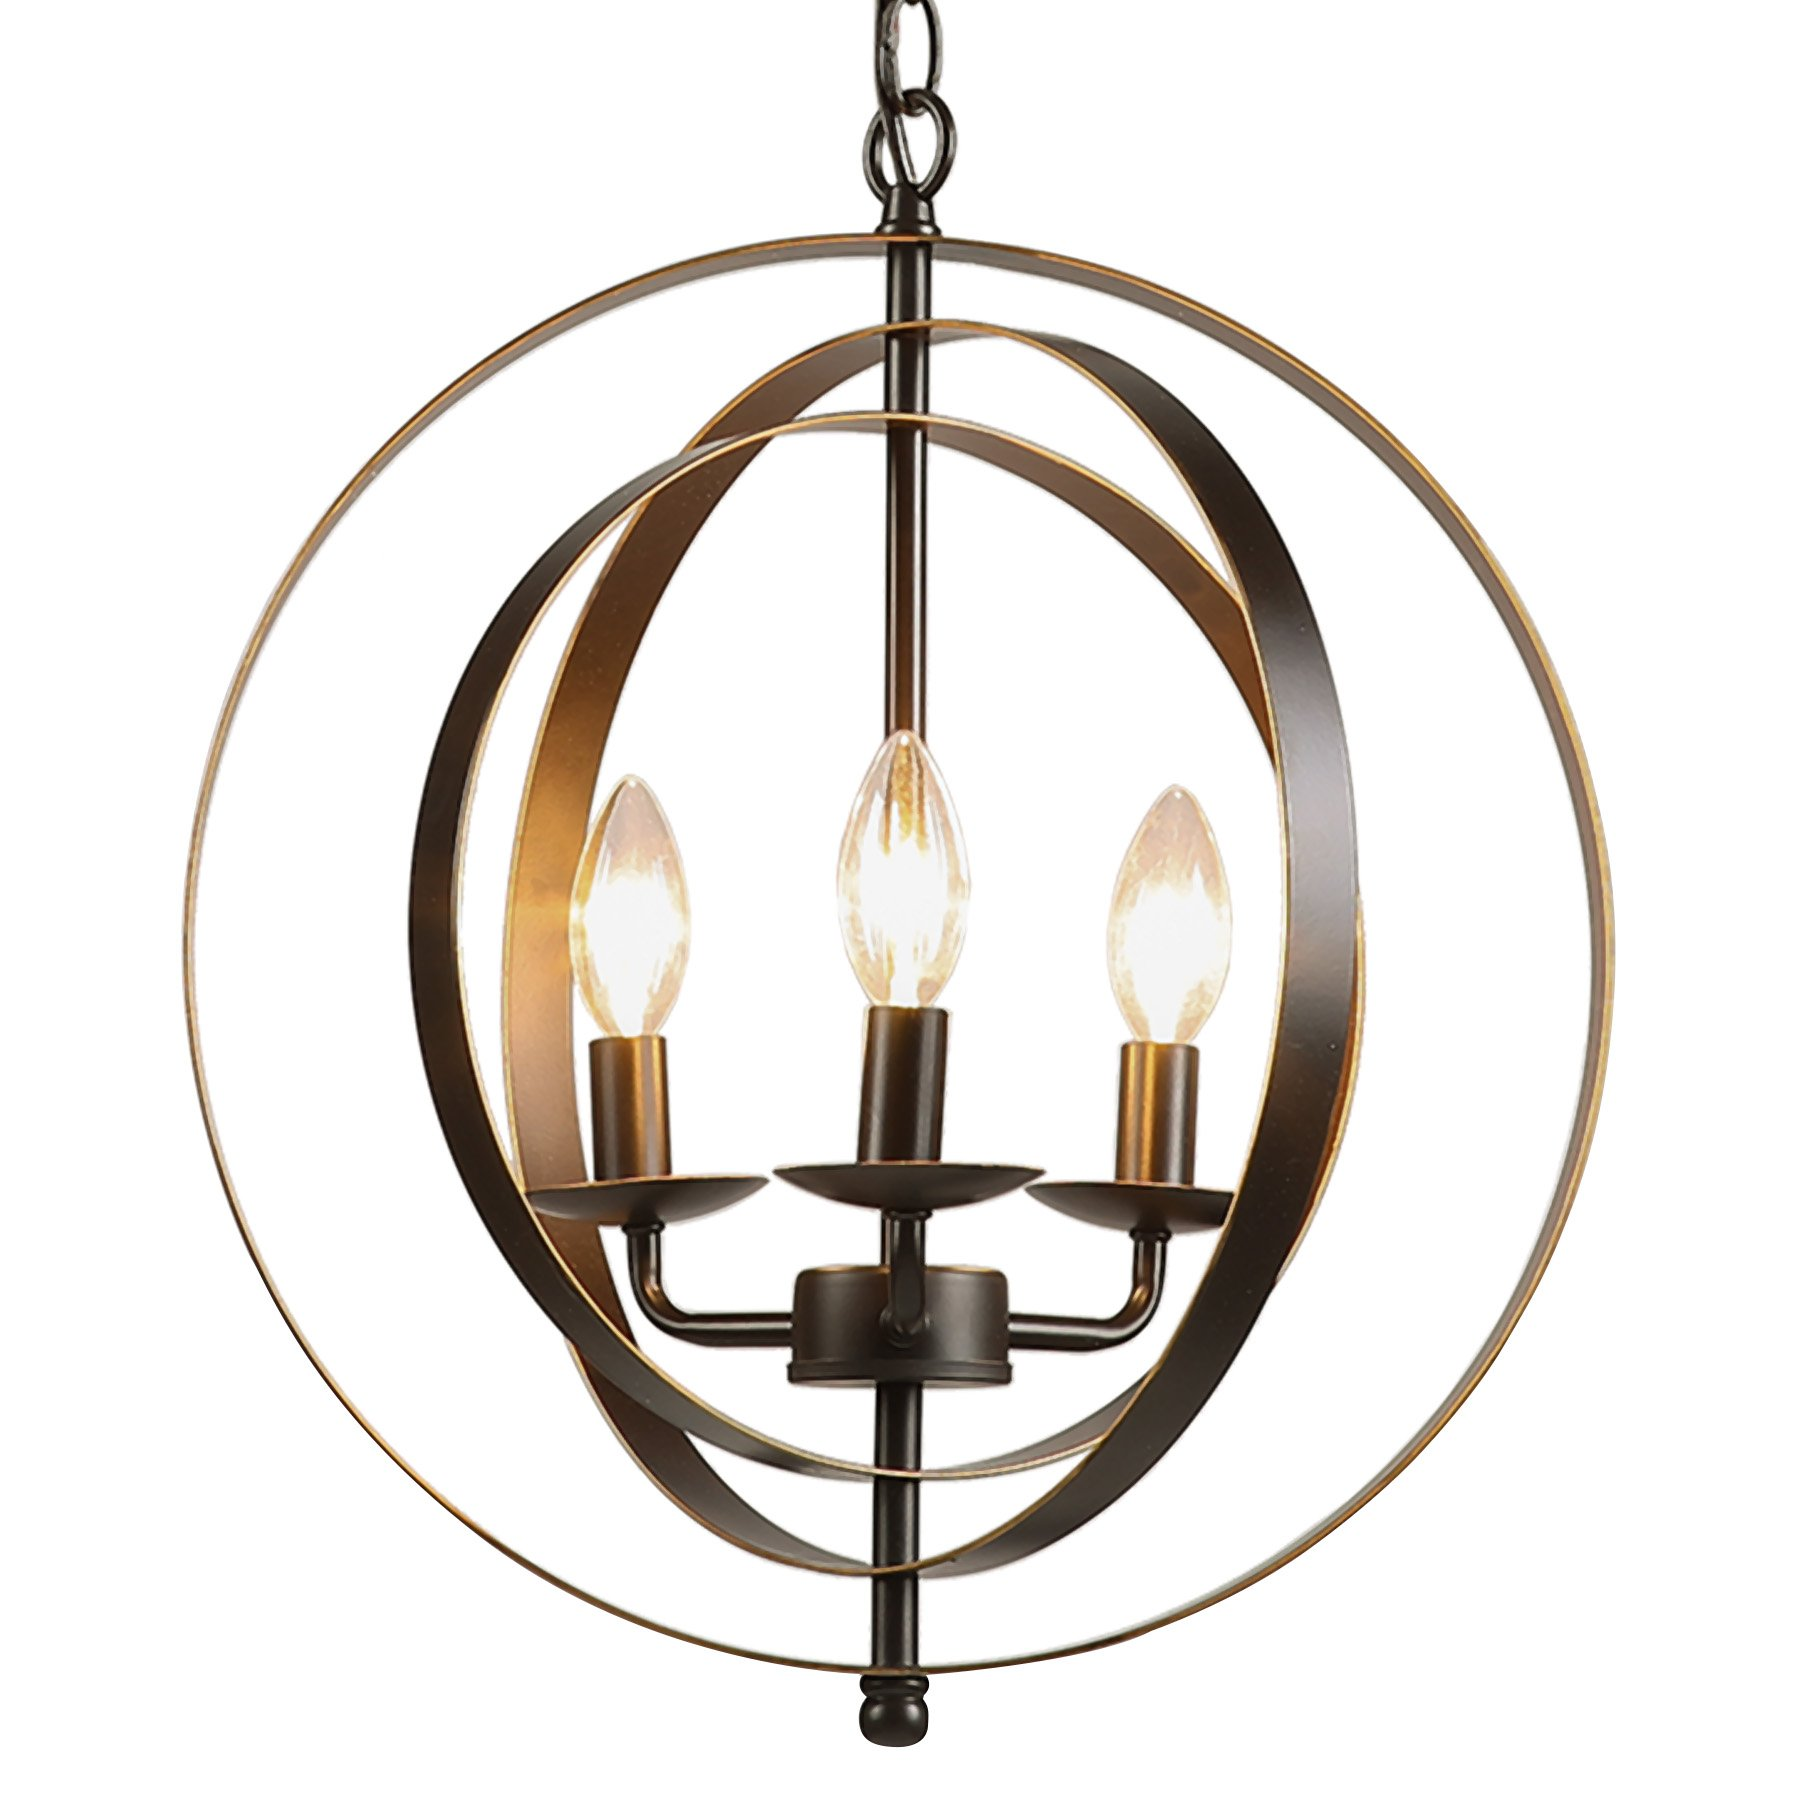 CO-Z Antique Bronze 3-Light Metal Industrial Globe Chandelier, Rustic Sphere Pendant Chandelier Lighting, Orb Hanging Ceiling Light Fixture for Dining Room Foyer Bedroom Kitchen Enterway Farmhouse